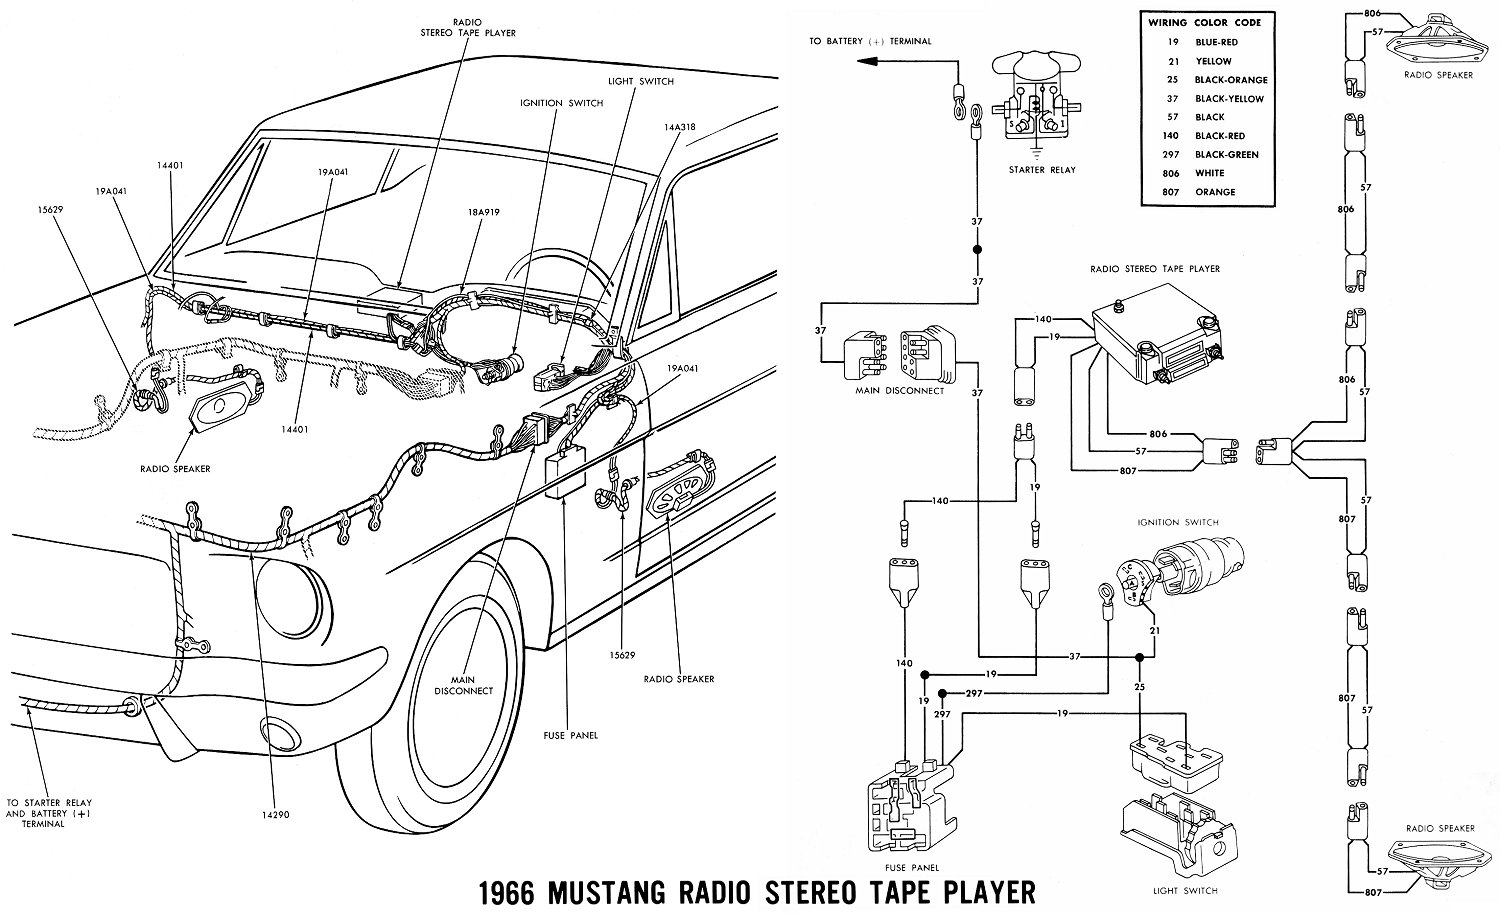 1995 jeep radio wiring diagram pdf with 1966 Mustang Radio Stereo Wiring on Jeep 56ncm Wrangler X Need Stereo Wiring Diagram together with RepairGuideContent likewise Where Is The Radio Fuse On A 2001 Mustang moreover 1997 Infiniti Qx4 Wiring Diagram And Electrical System Service And Troubleshooting also 96 Taurus Fuse Box.